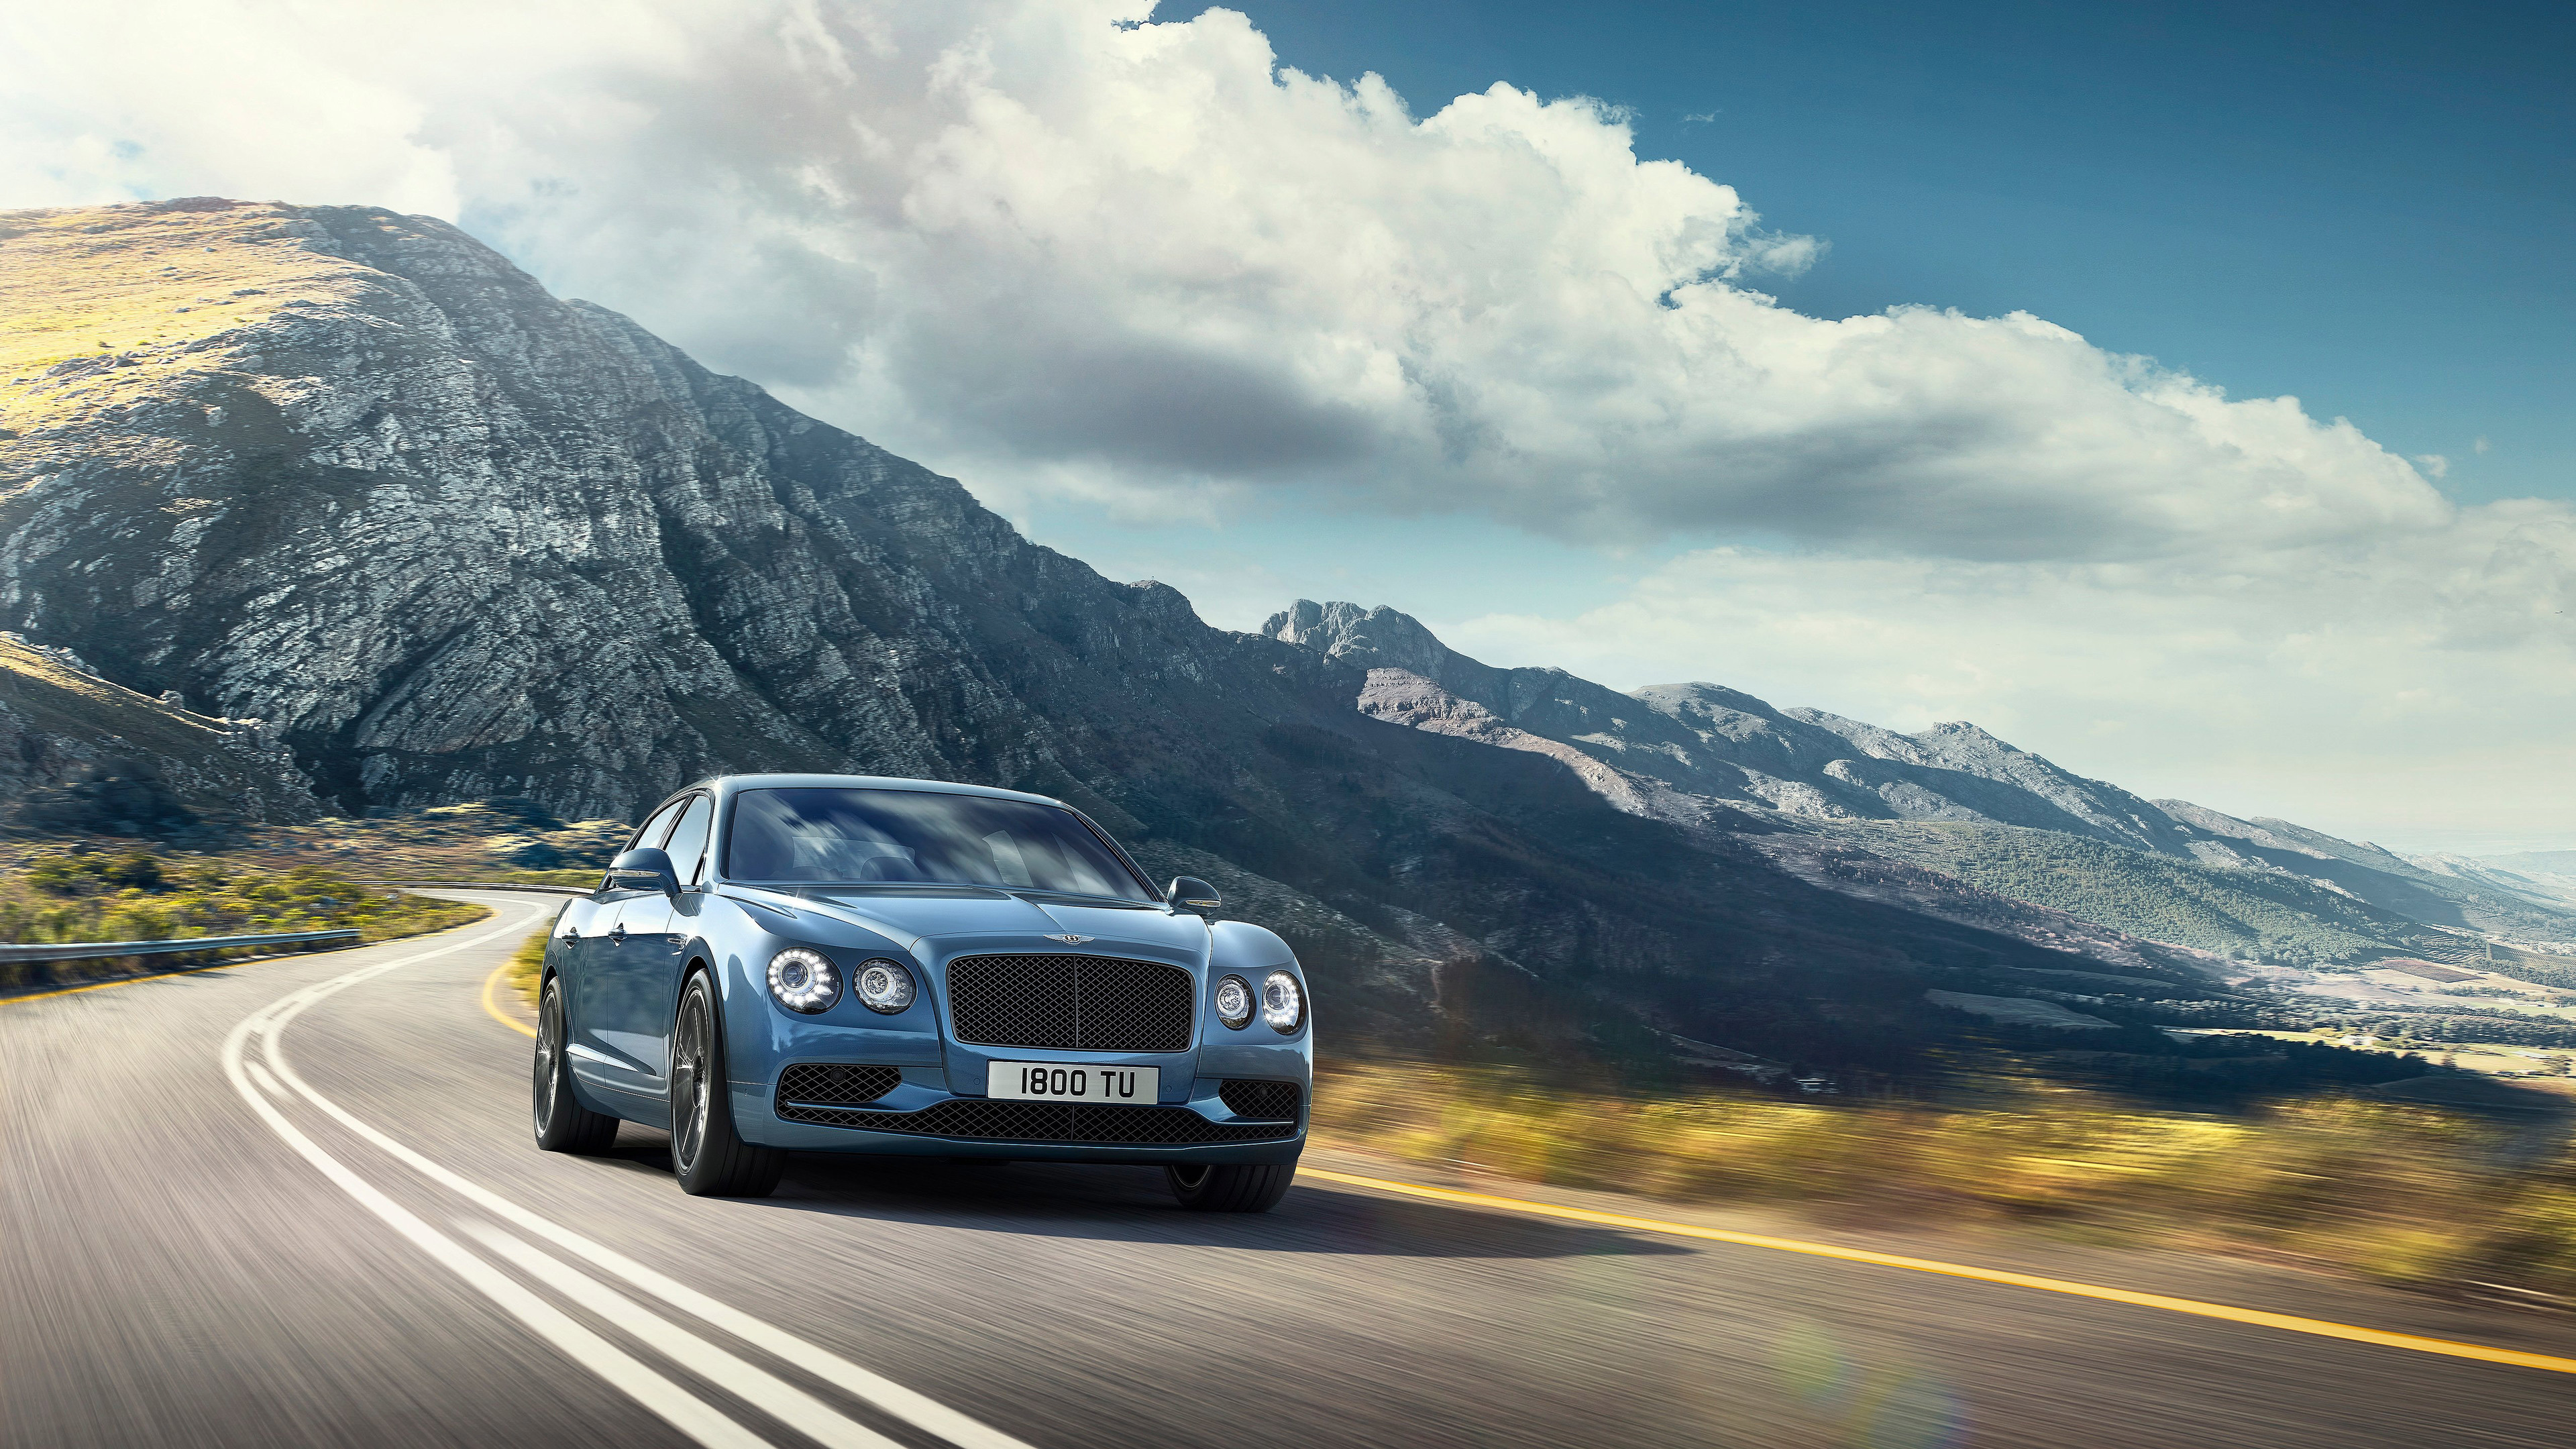 2017 bentley flying spur w12 s 1539104761 - 2017 Bentley Flying Spur W12 S - cars wallpapers, bentley wallpapers, 5k wallpapers, 2017 cars wallpapers